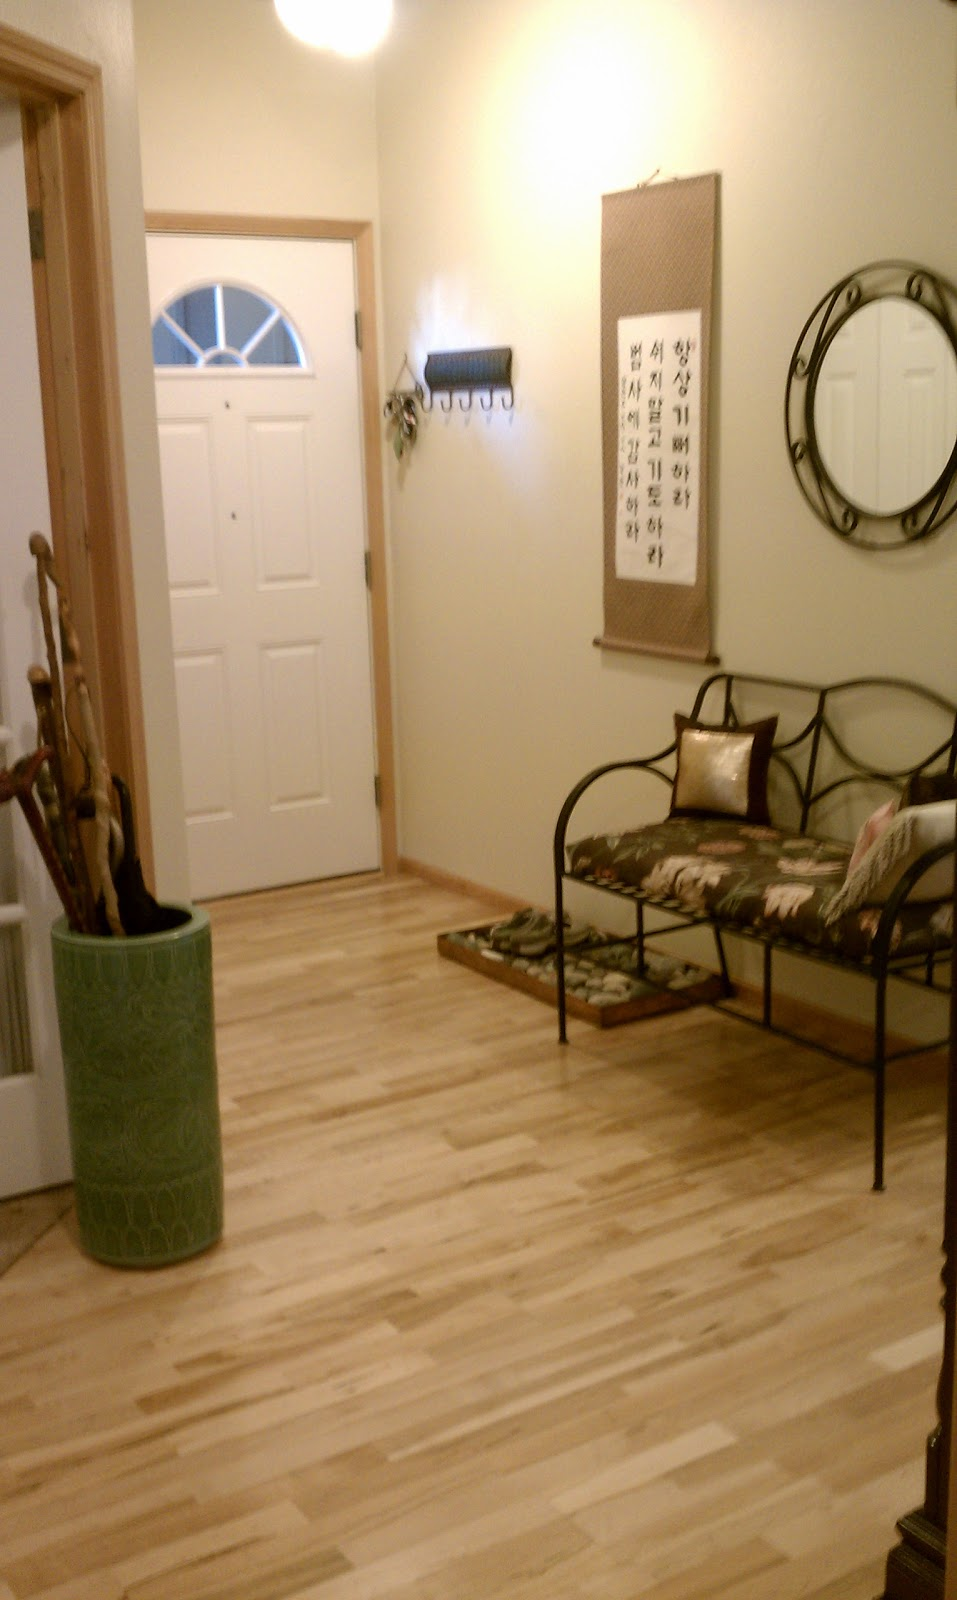 Foyer Living Room Kitchen Church : Buy or rent our home foyer dining